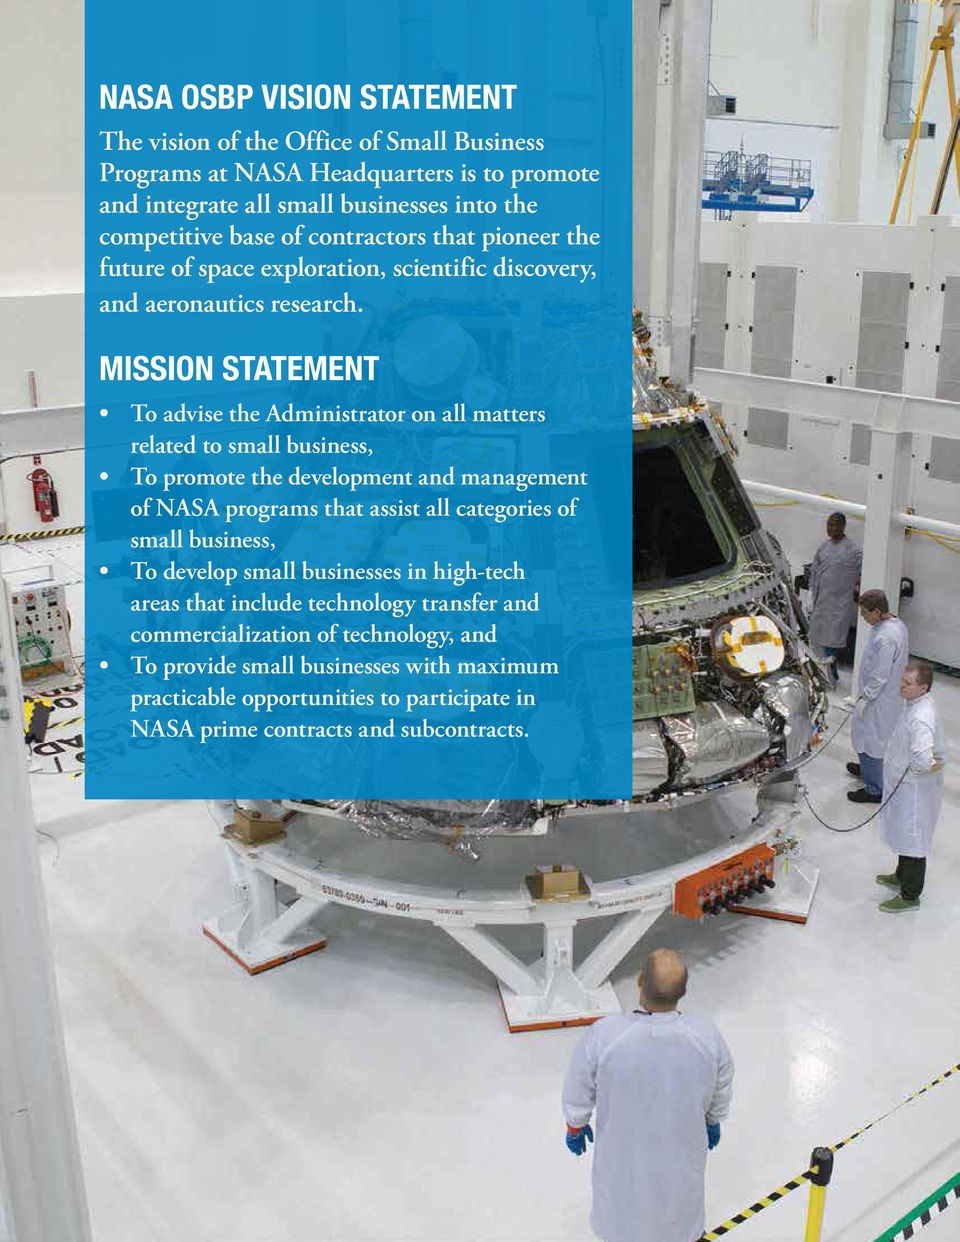 MISSION STATEMENT To advise the Administrator on all matters related to small business, To promote the development and management of NASA programs that assist all categories of